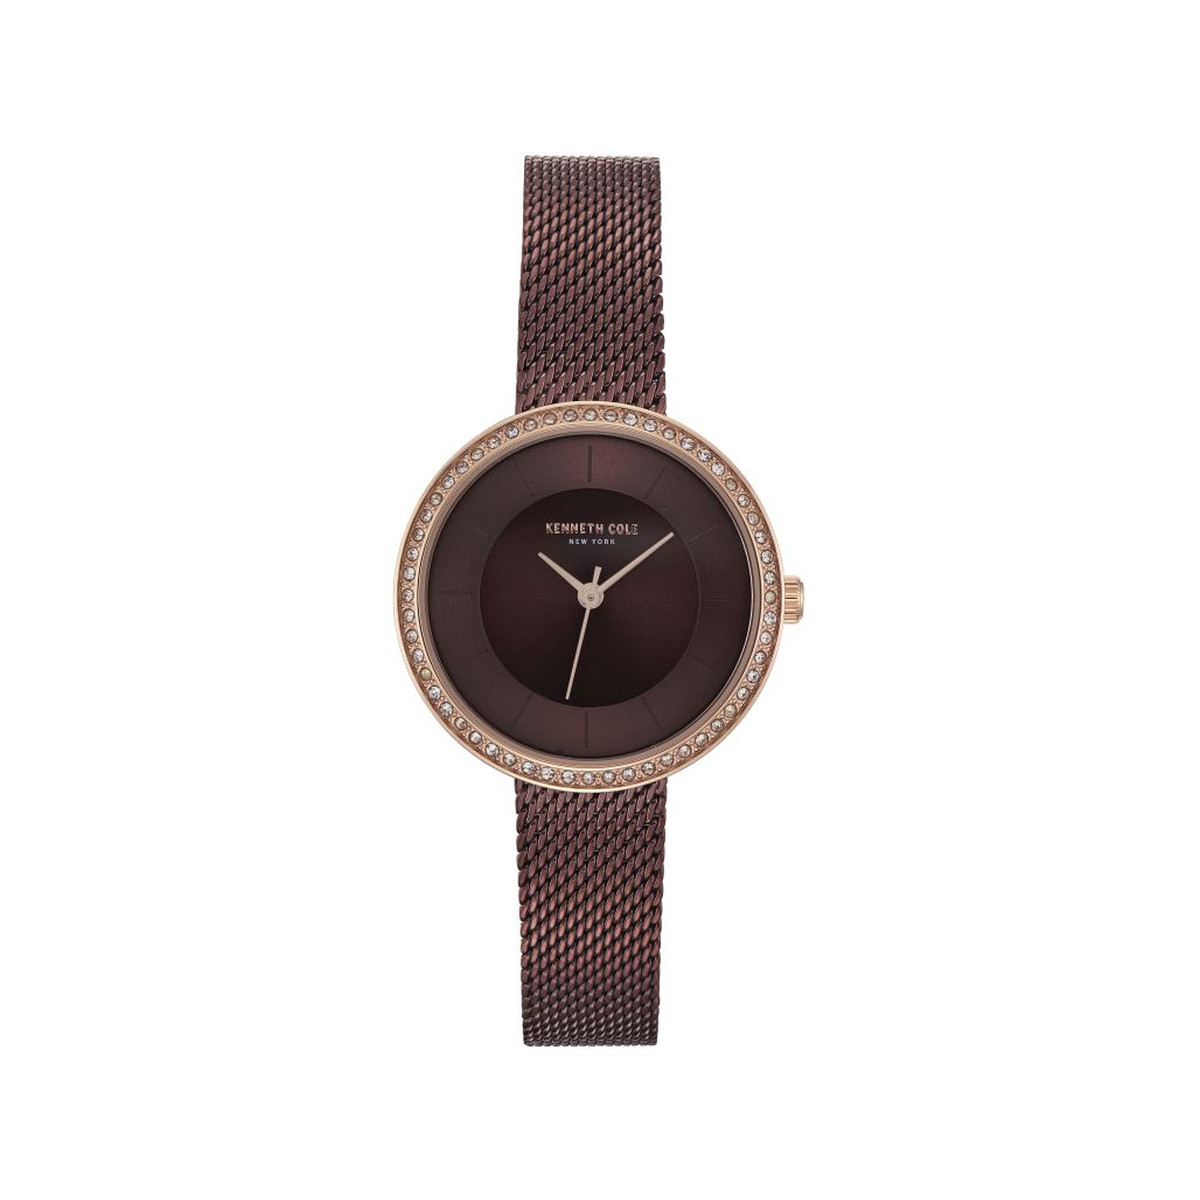 Montre Kenneth Cole femme acier marron pierres imi